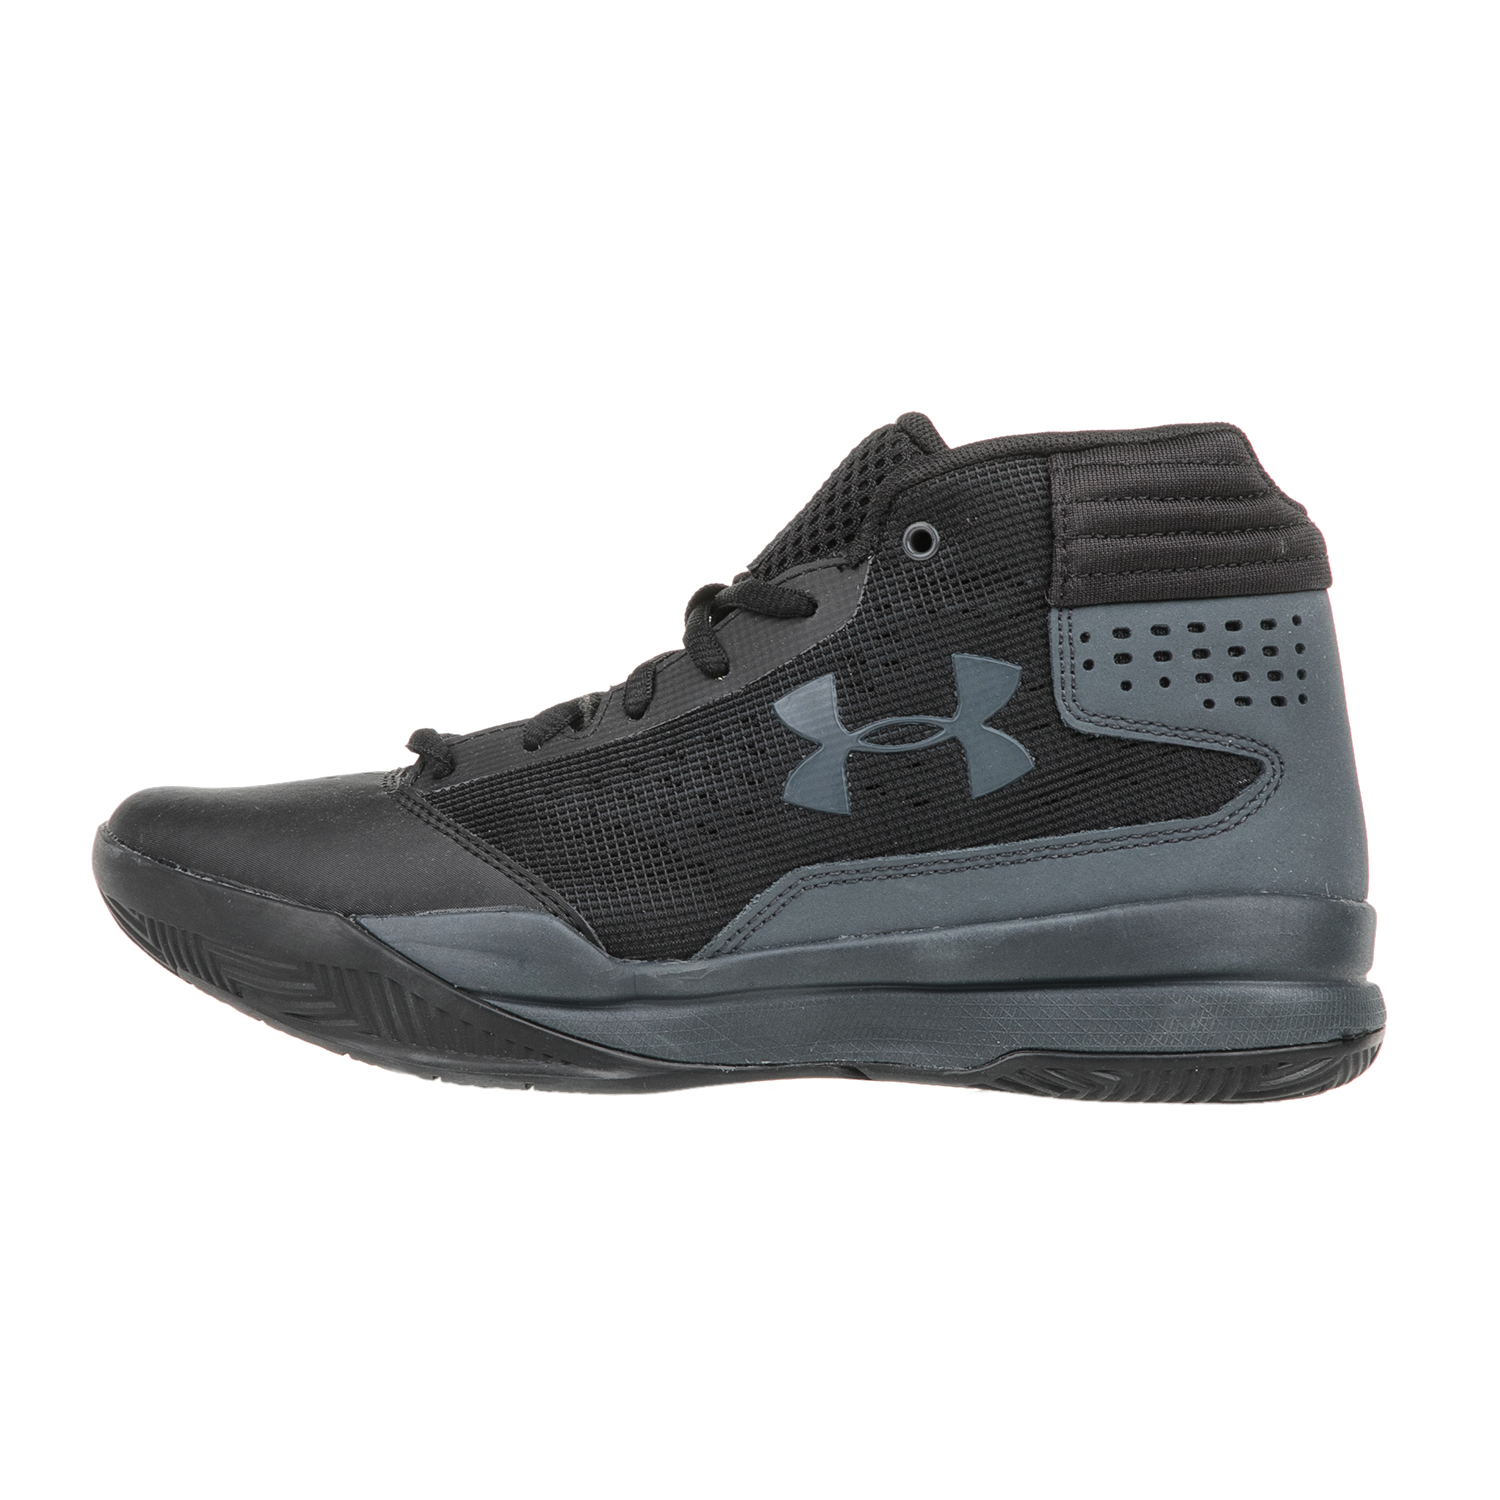 UNDER ARMOUR - Αγορίστικα παπούτσια μπάσκετ UNDER ARMOUR BGS JET 2017 μαύρα παιδικά boys παπούτσια αθλητικά